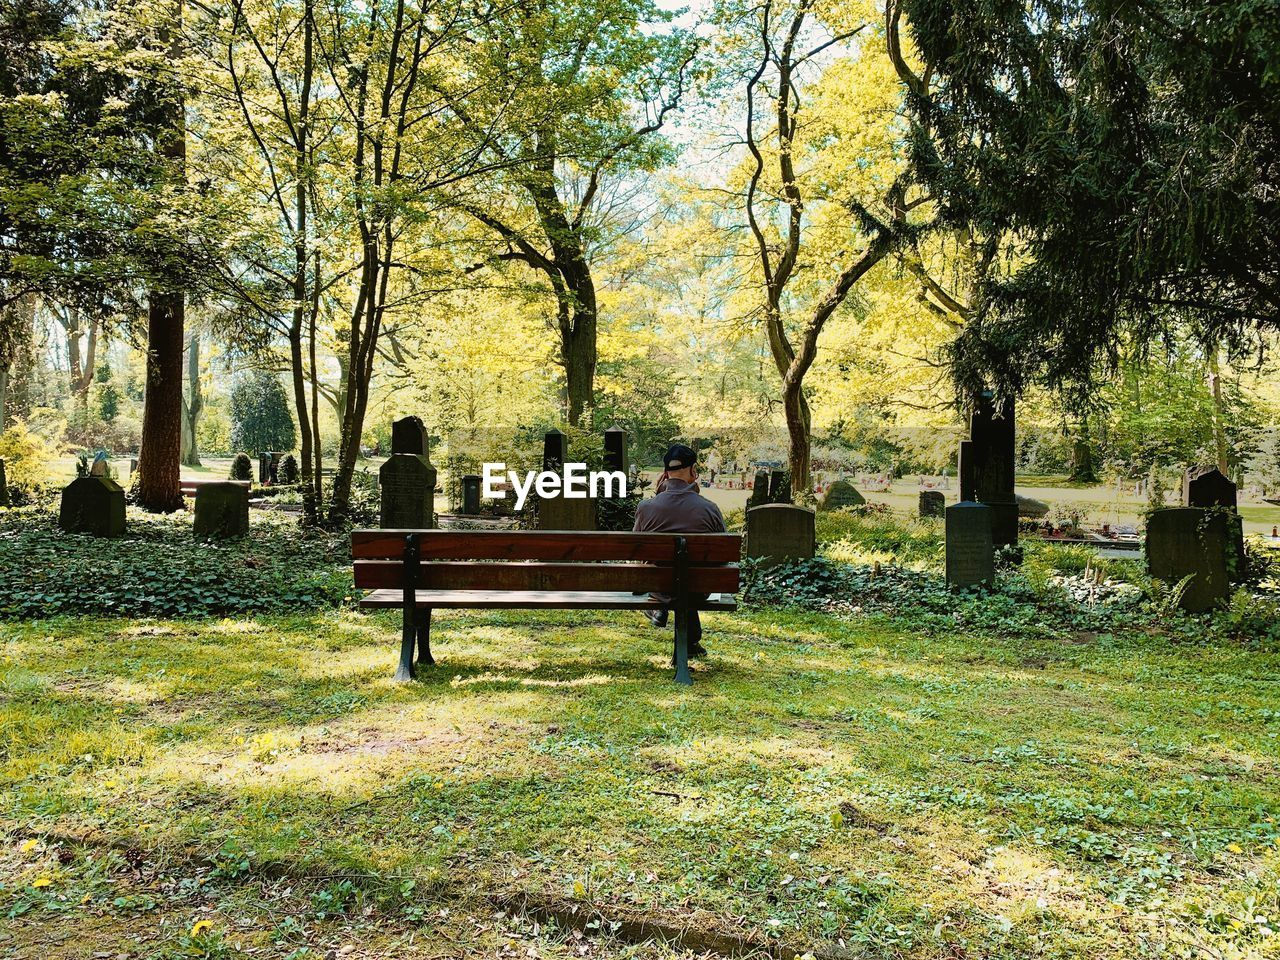 tree, plant, bench, seat, sitting, real people, day, nature, relaxation, leisure activity, men, park, people, outdoors, growth, grass, adult, lifestyles, group of people, rear view, park bench